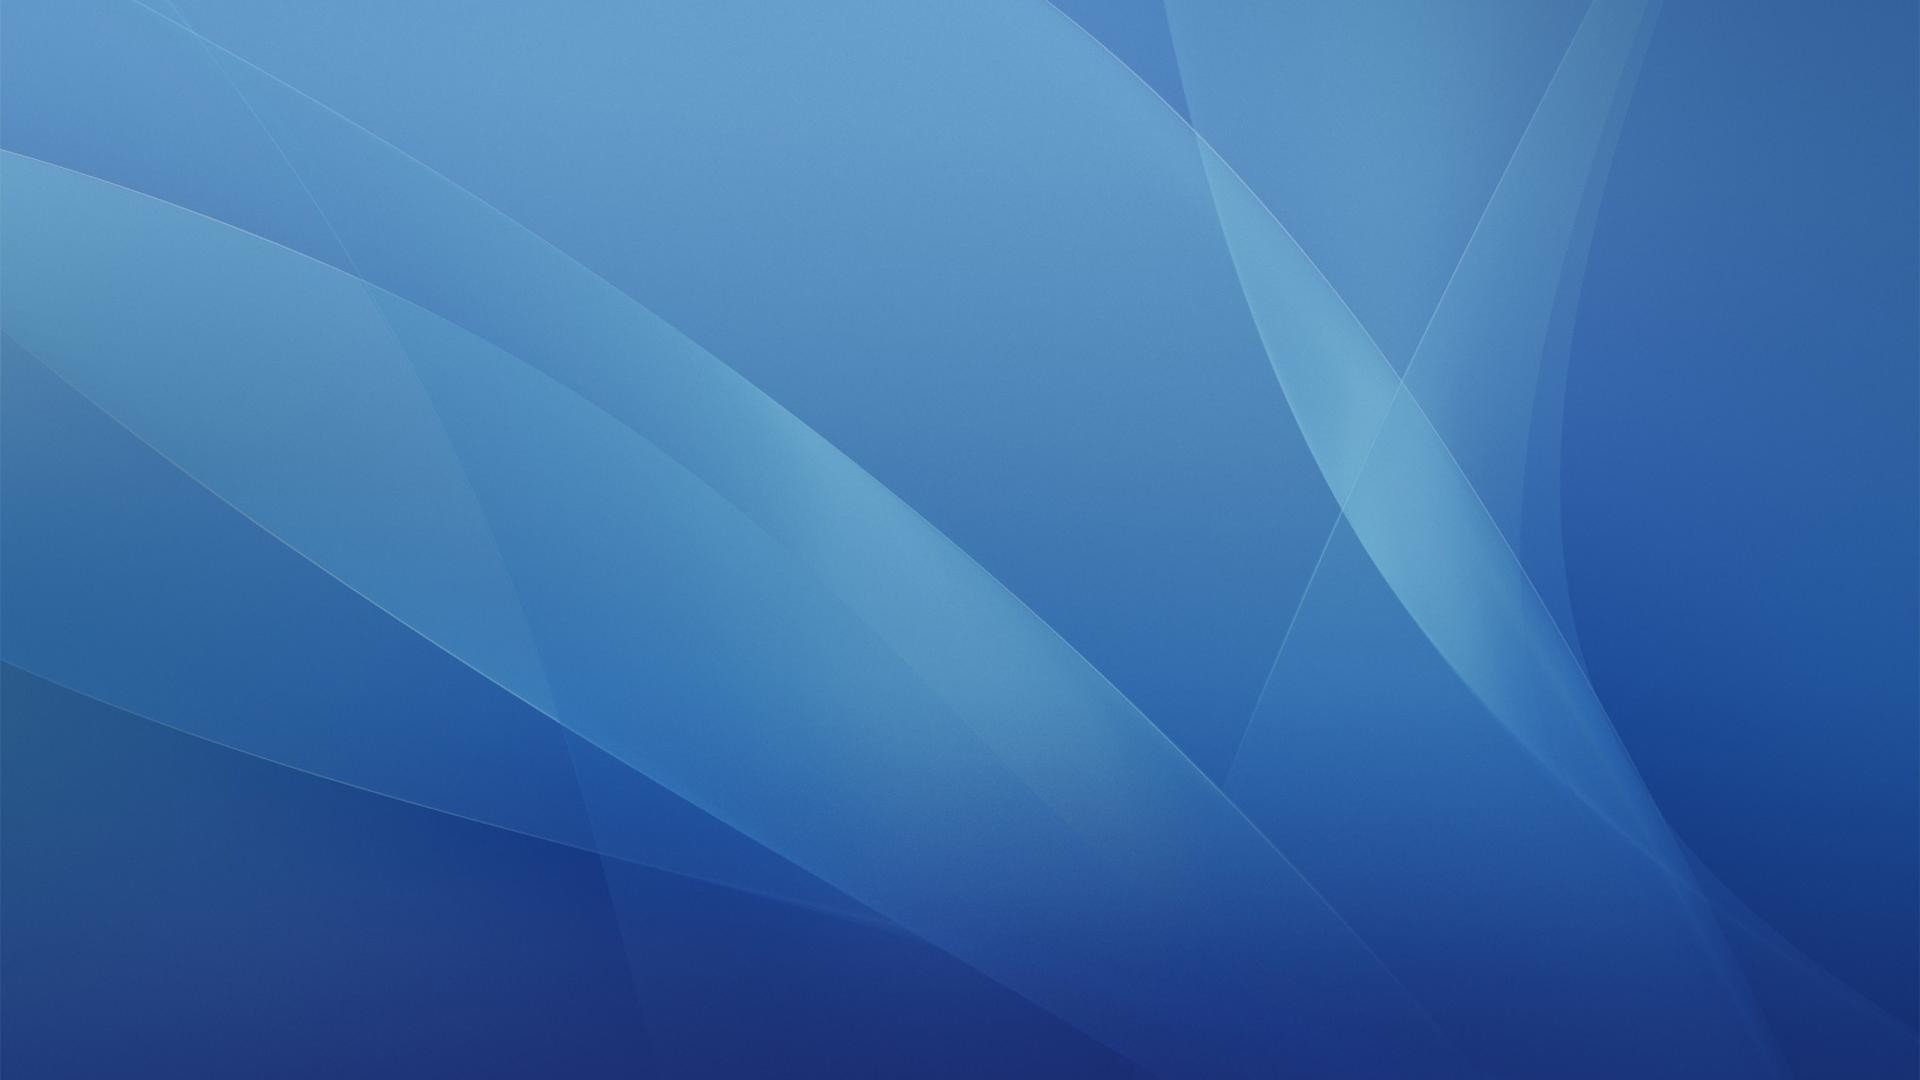 Res: 1920x1080,  abstract Blue texture wallpaper background wide wallpapers:1280x800,1440x900,1680x1050  - hd